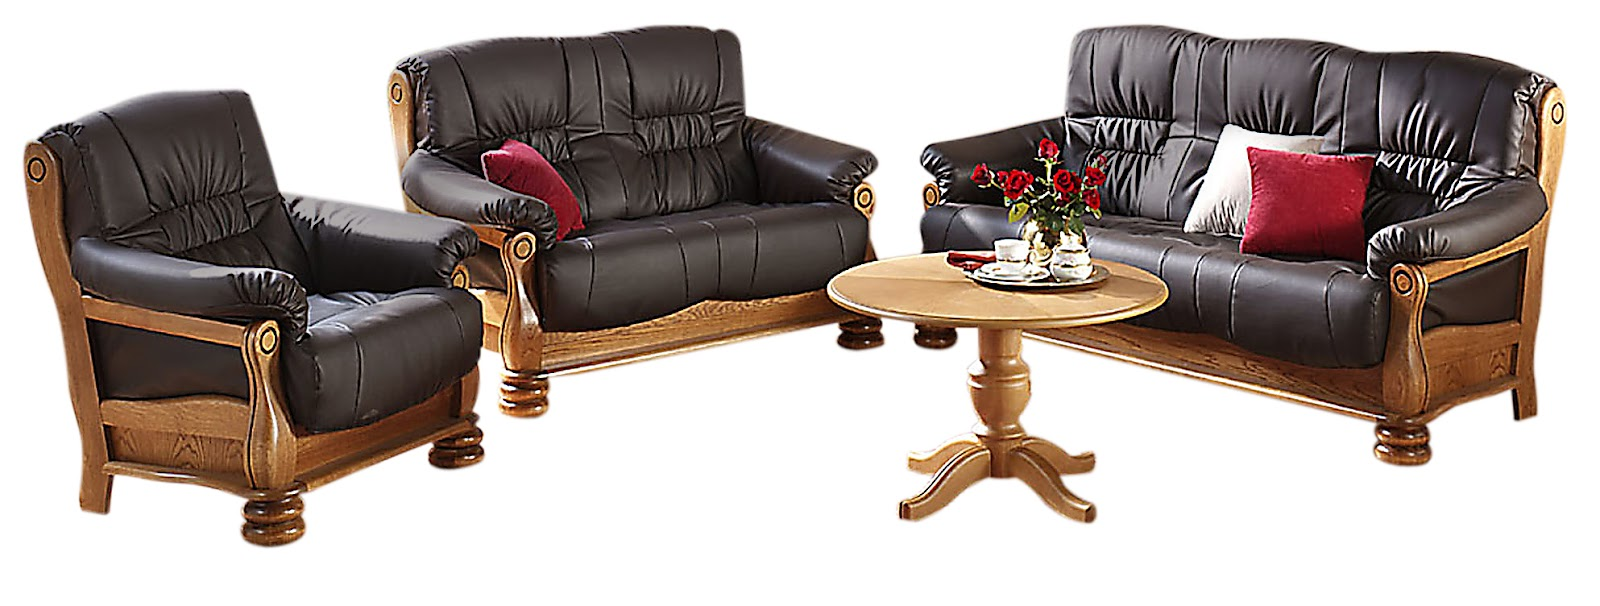 Wooden Sofa Set Designs | 1600 x 606 · 166 kB · jpeg